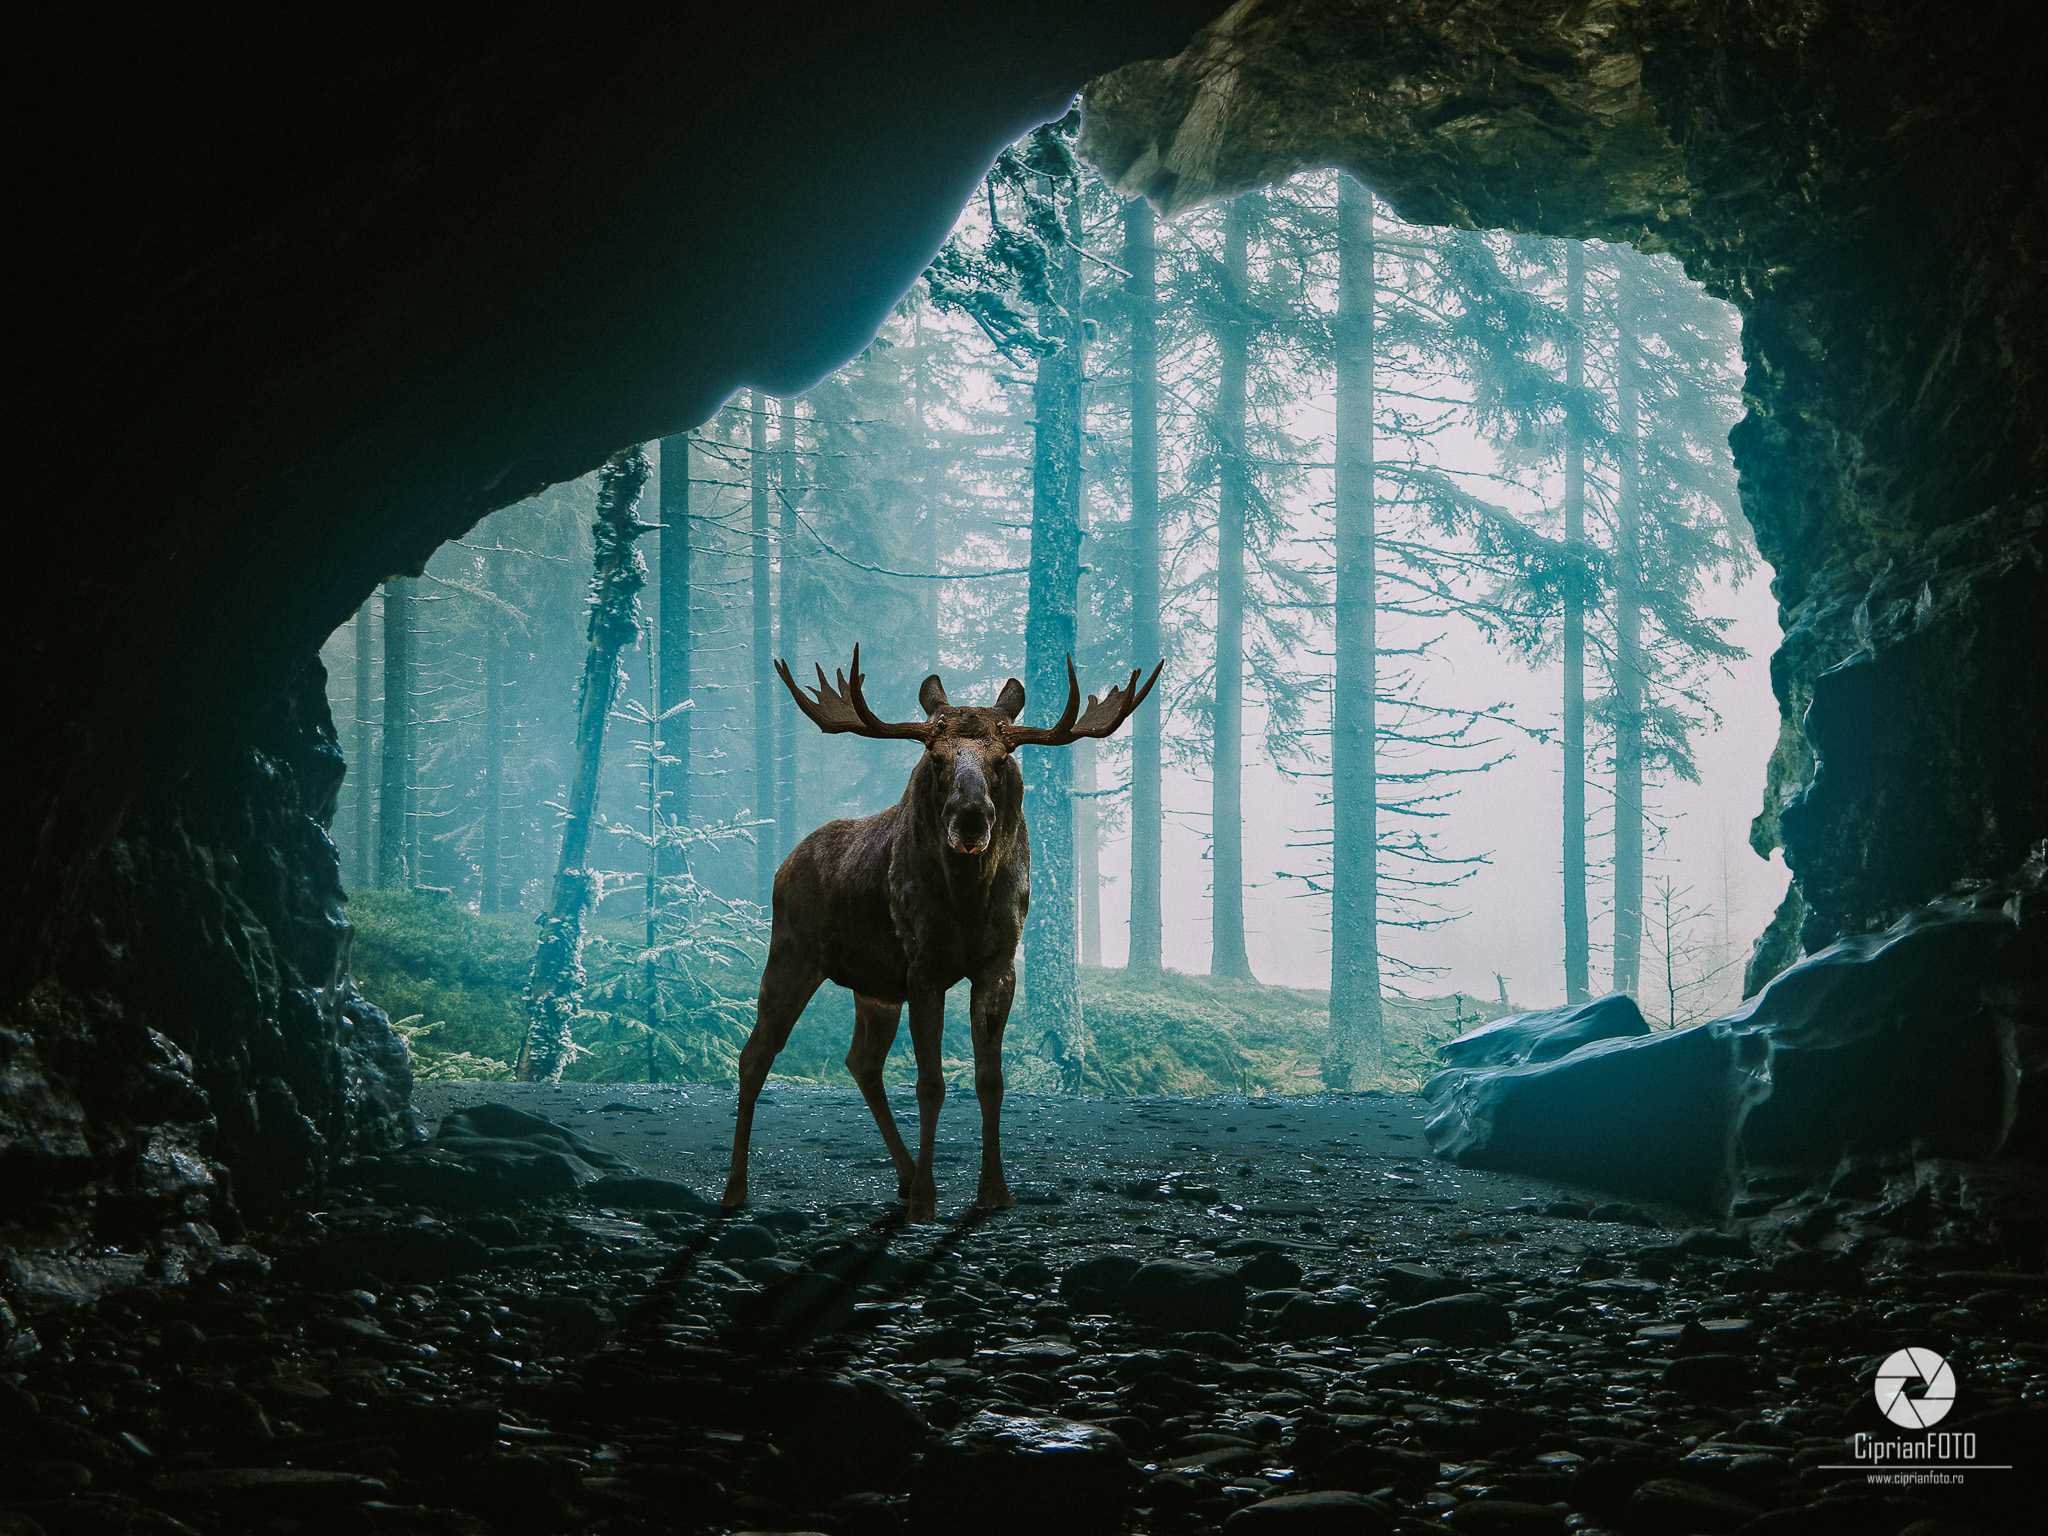 Moose In Cave, Photoshop Manipulation Tutorial, CiprianFOTO